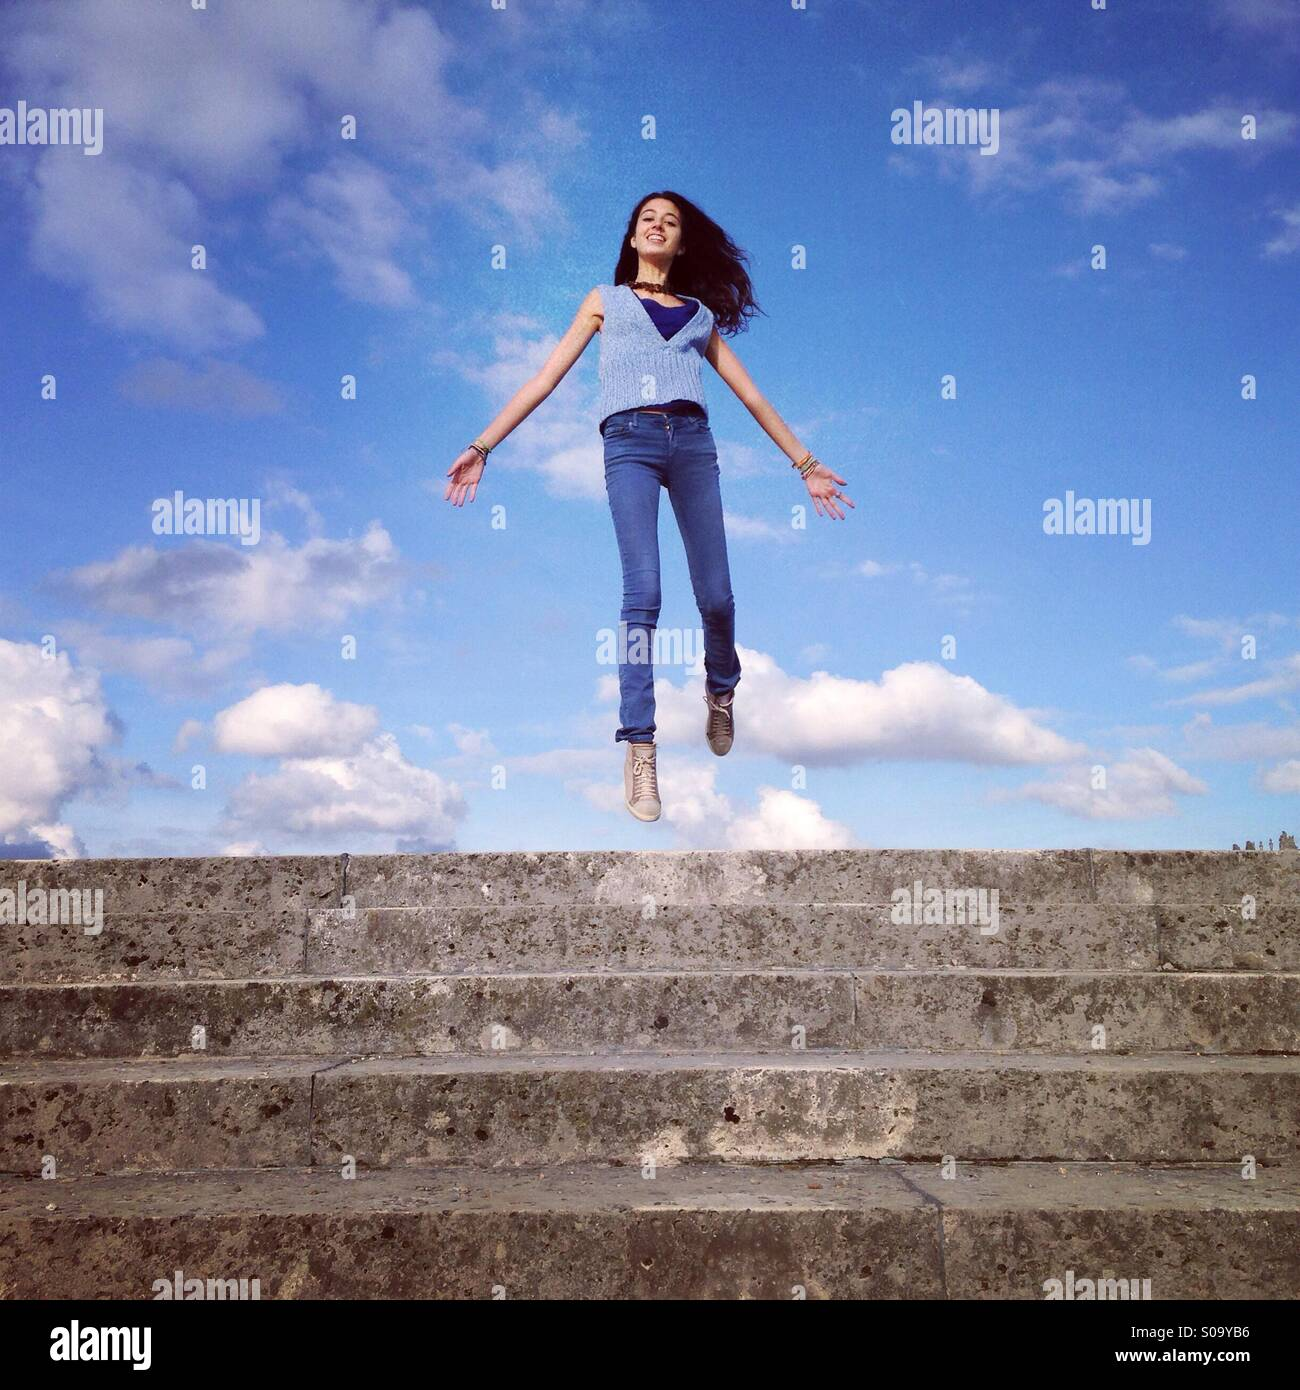 At the top of my heart - Stock Image